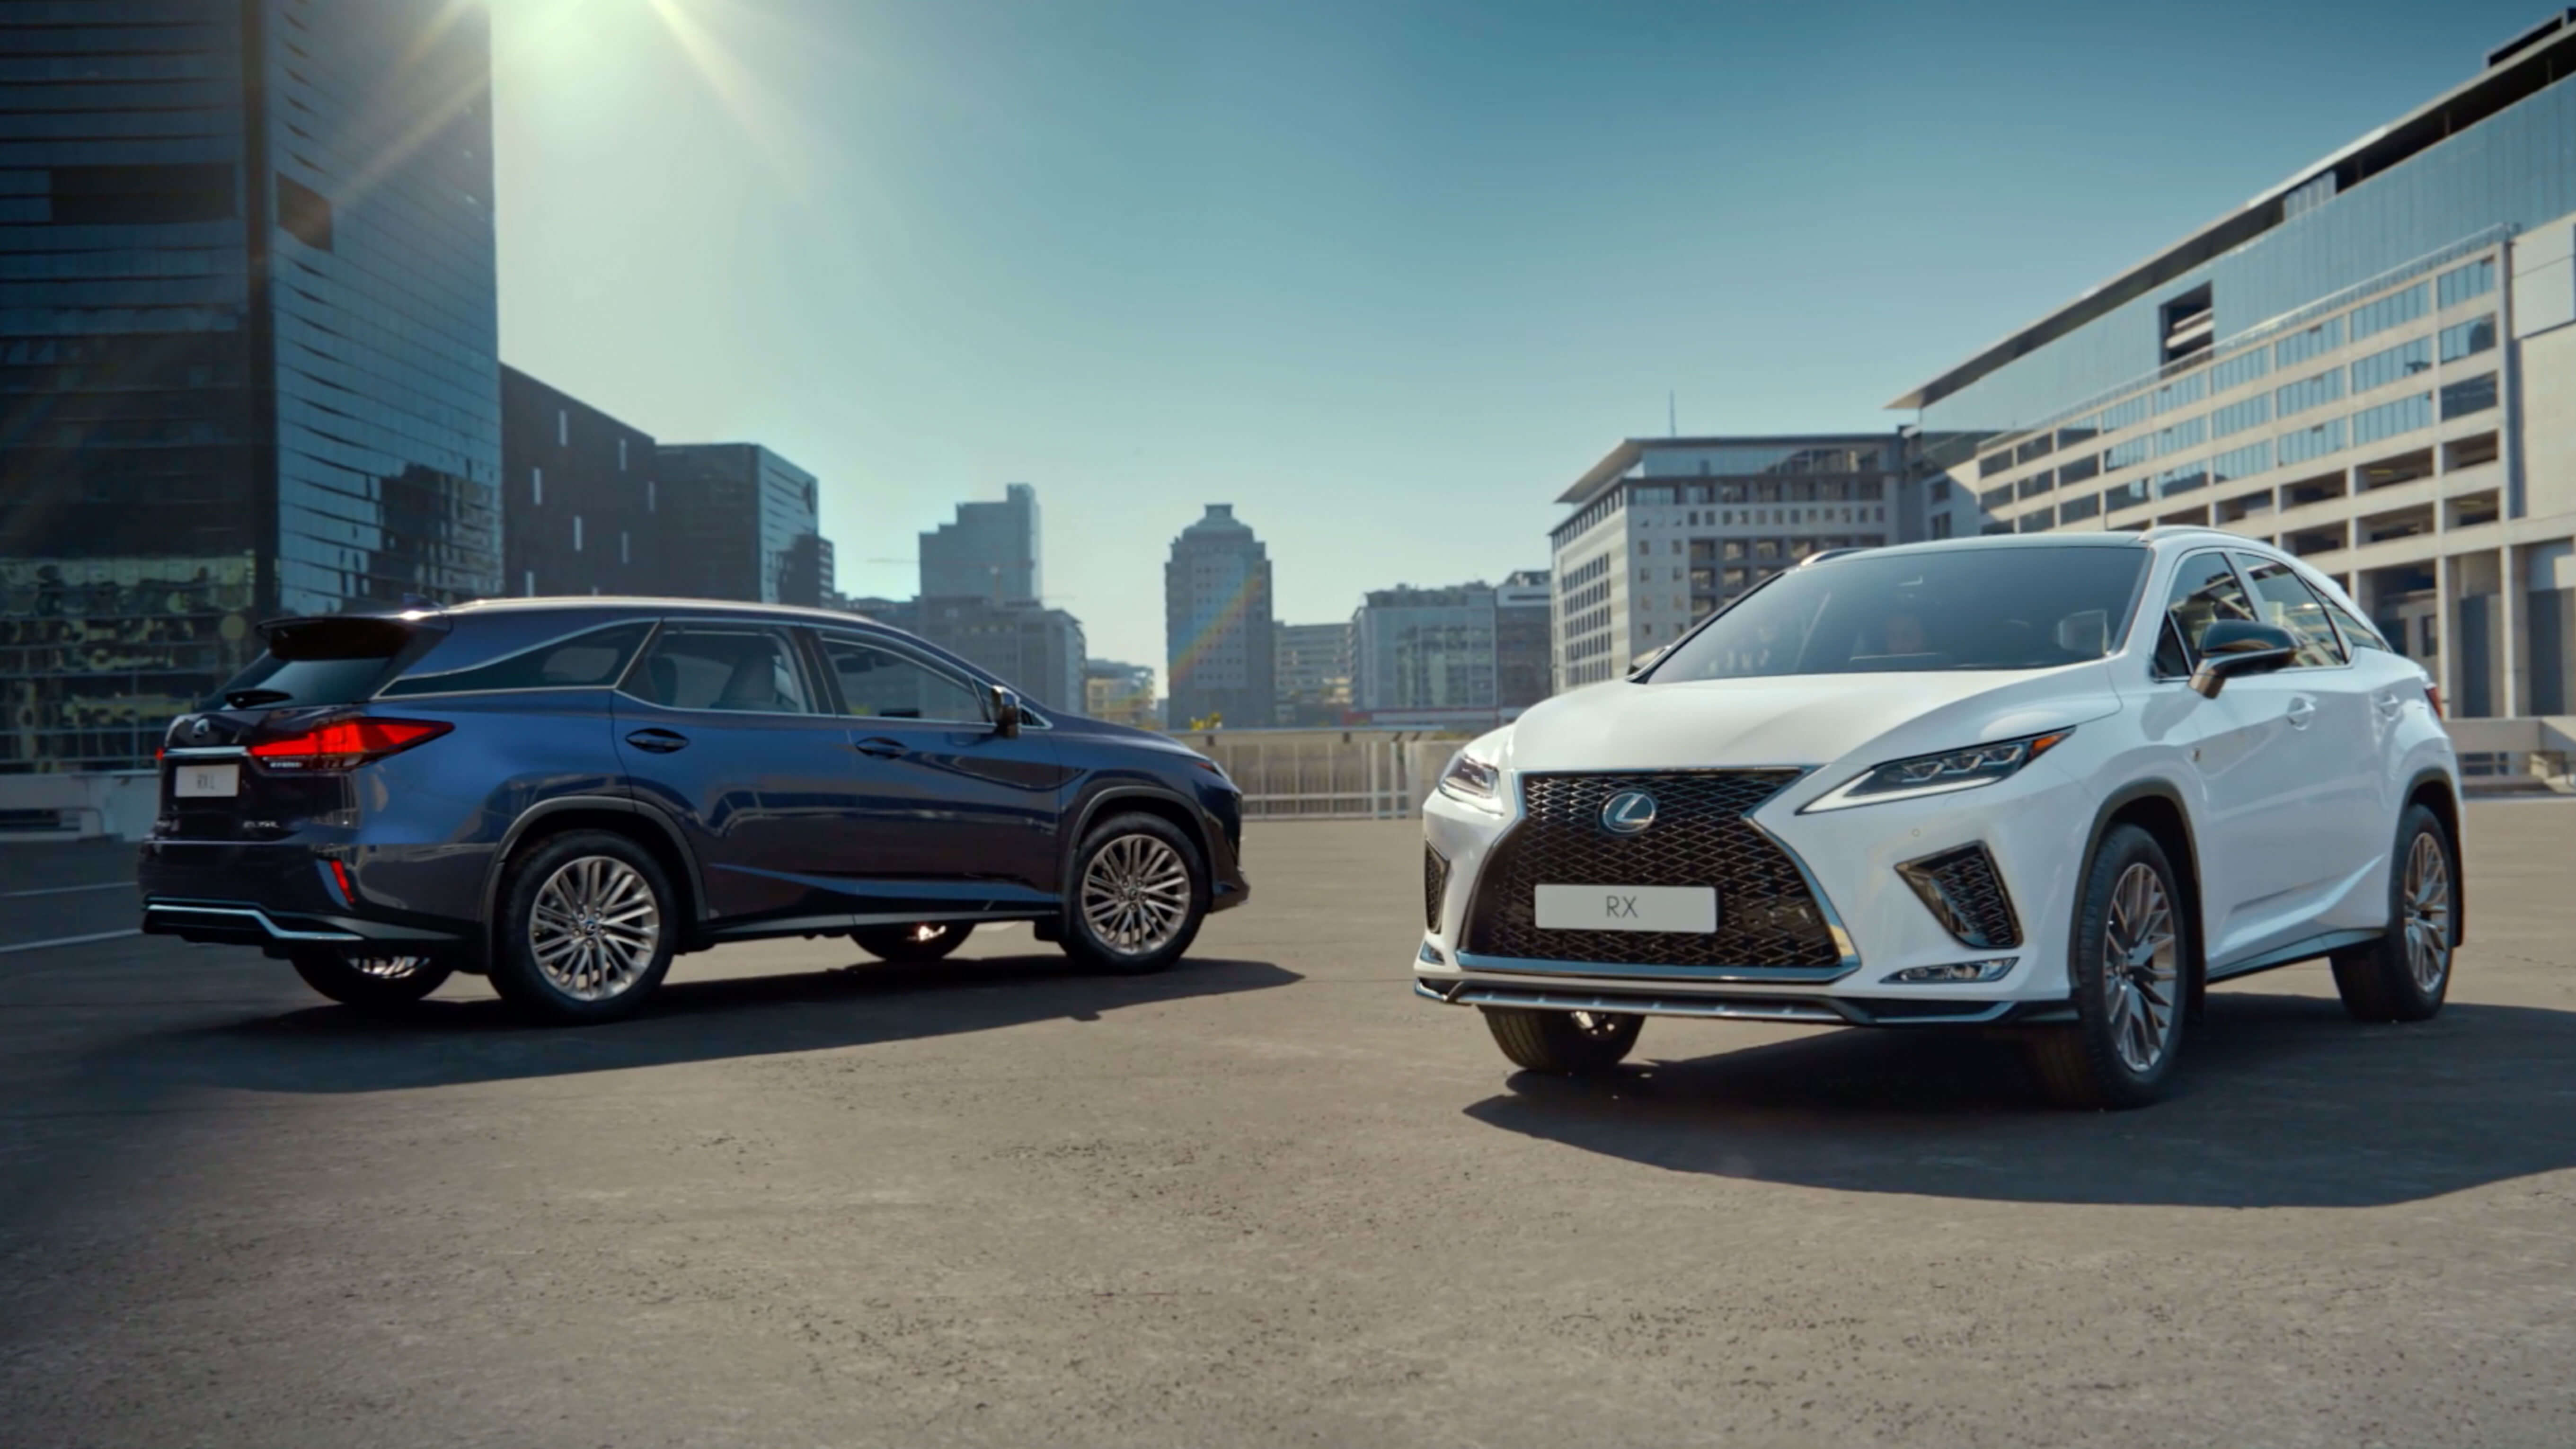 2019 lexus rx petrol video still